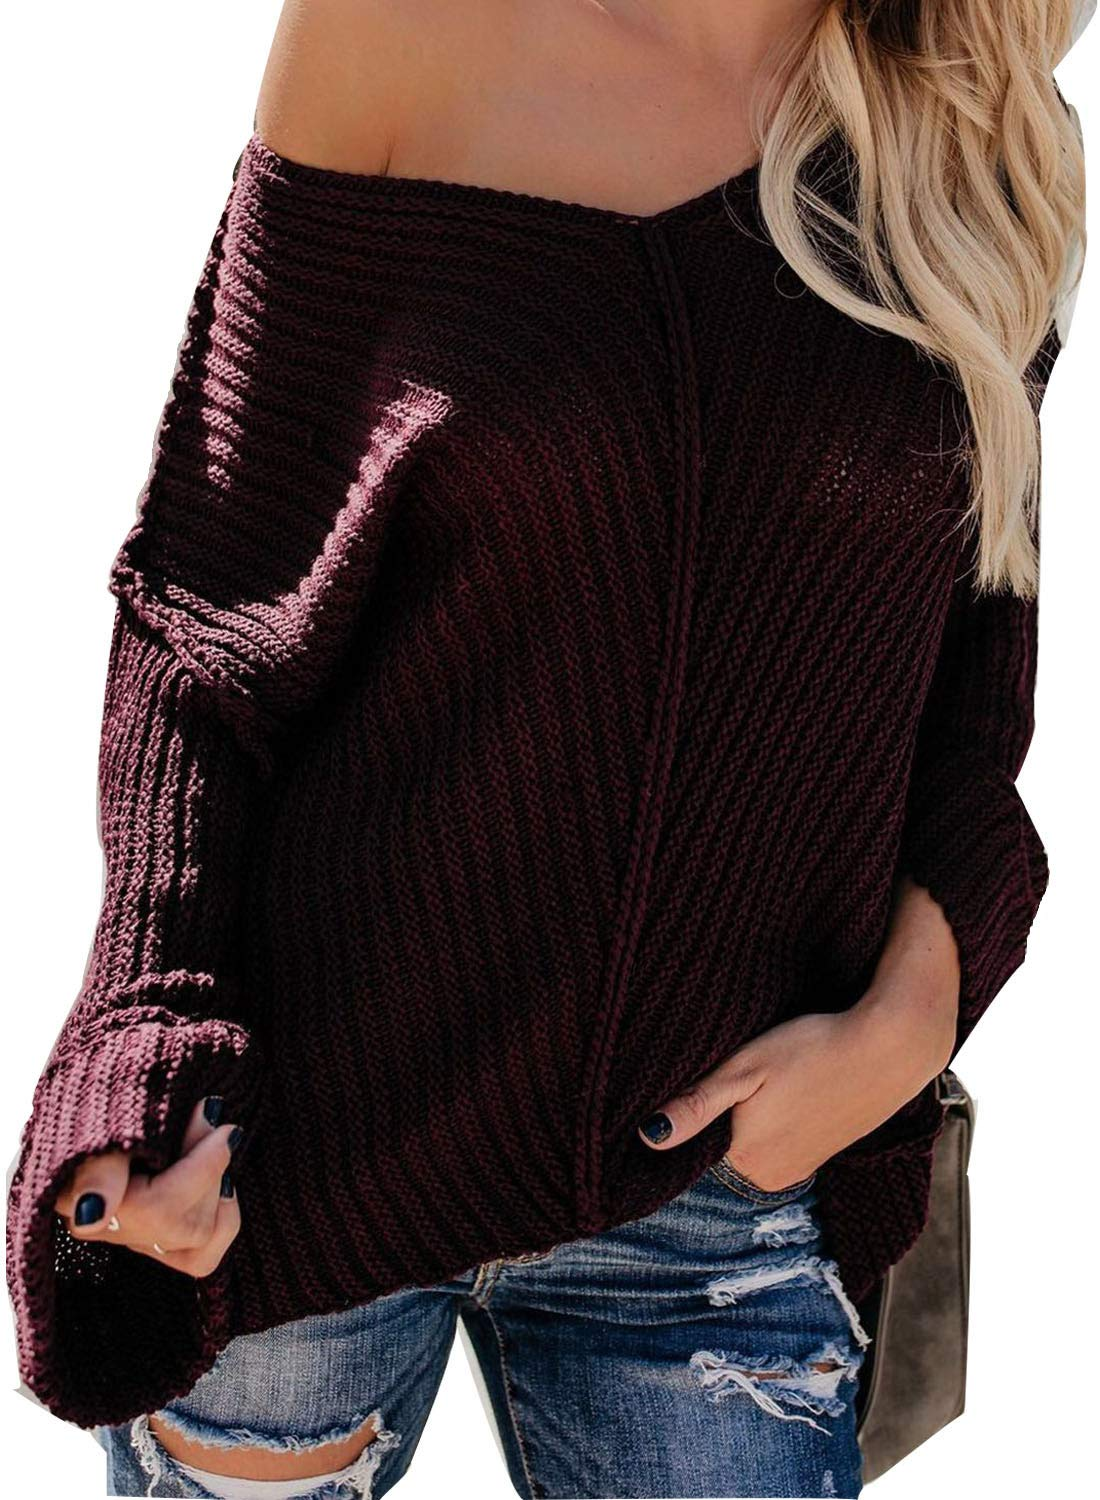 Astylish Women Breathable V Neck Cuffed Sleeve Off The Shoulder Loose Fit Oversize Ribbed Cable Knit Pullover Sweater Jumper Red Large